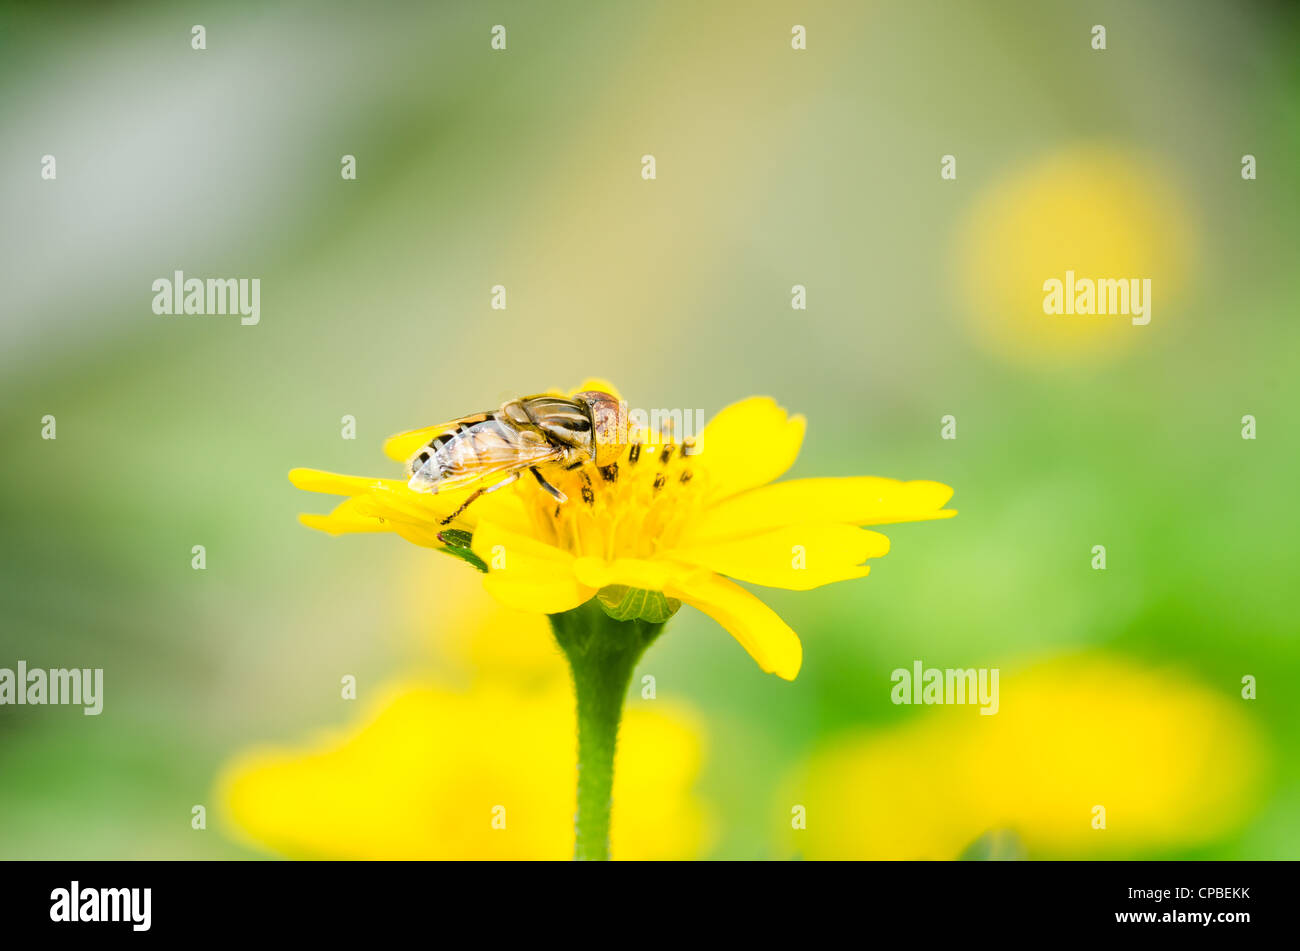 Fruit files or Flower files or hover files macro in green nature or in the garden - Stock Image